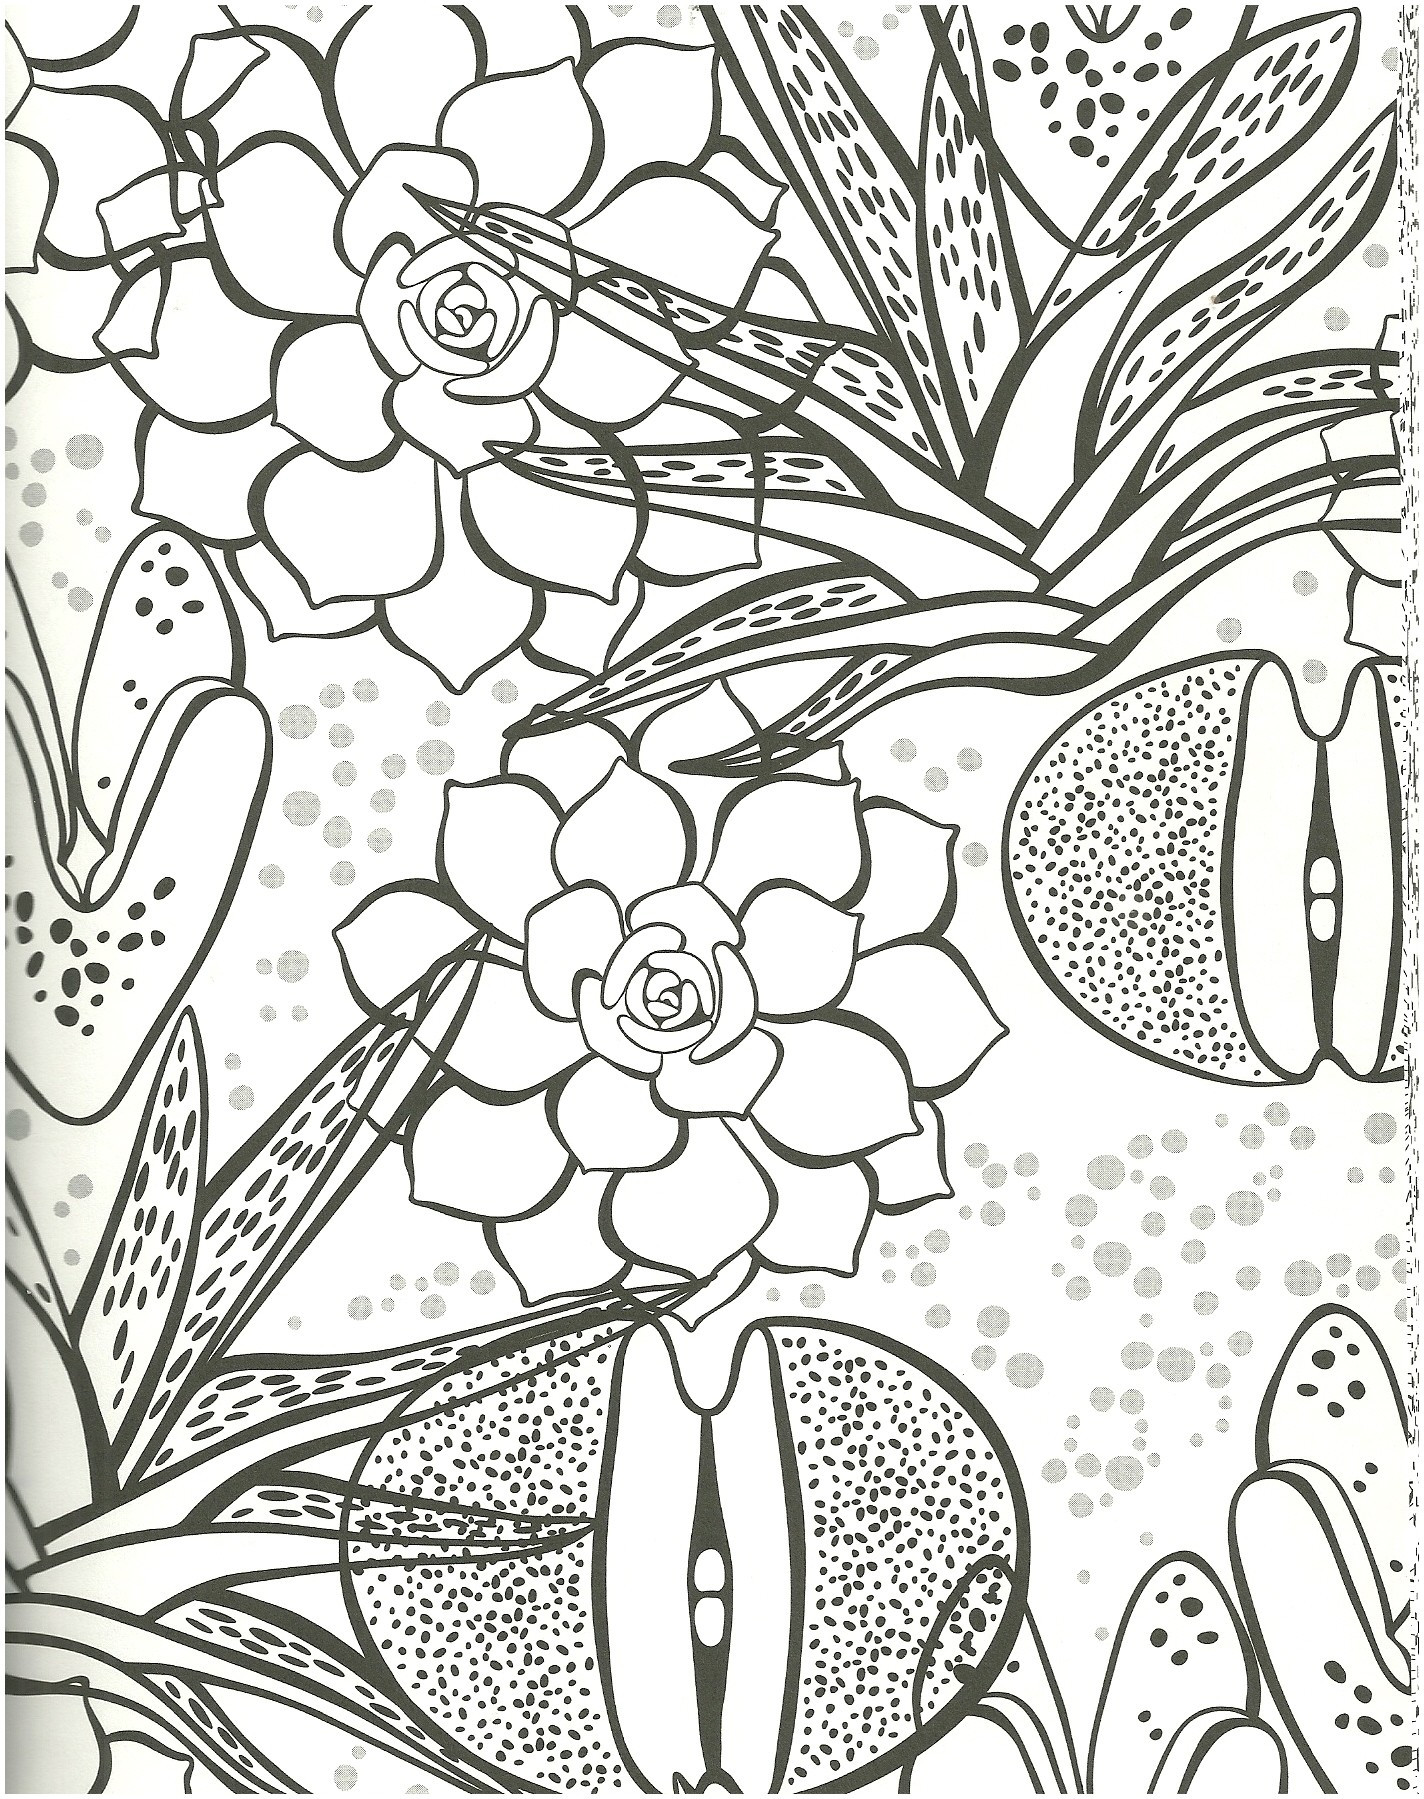 long black vase of valentine coloring pages cool vases flower vase coloring page pages throughout valentine coloring pages cool vases flower vase coloring page pages flowers in a top i 0d